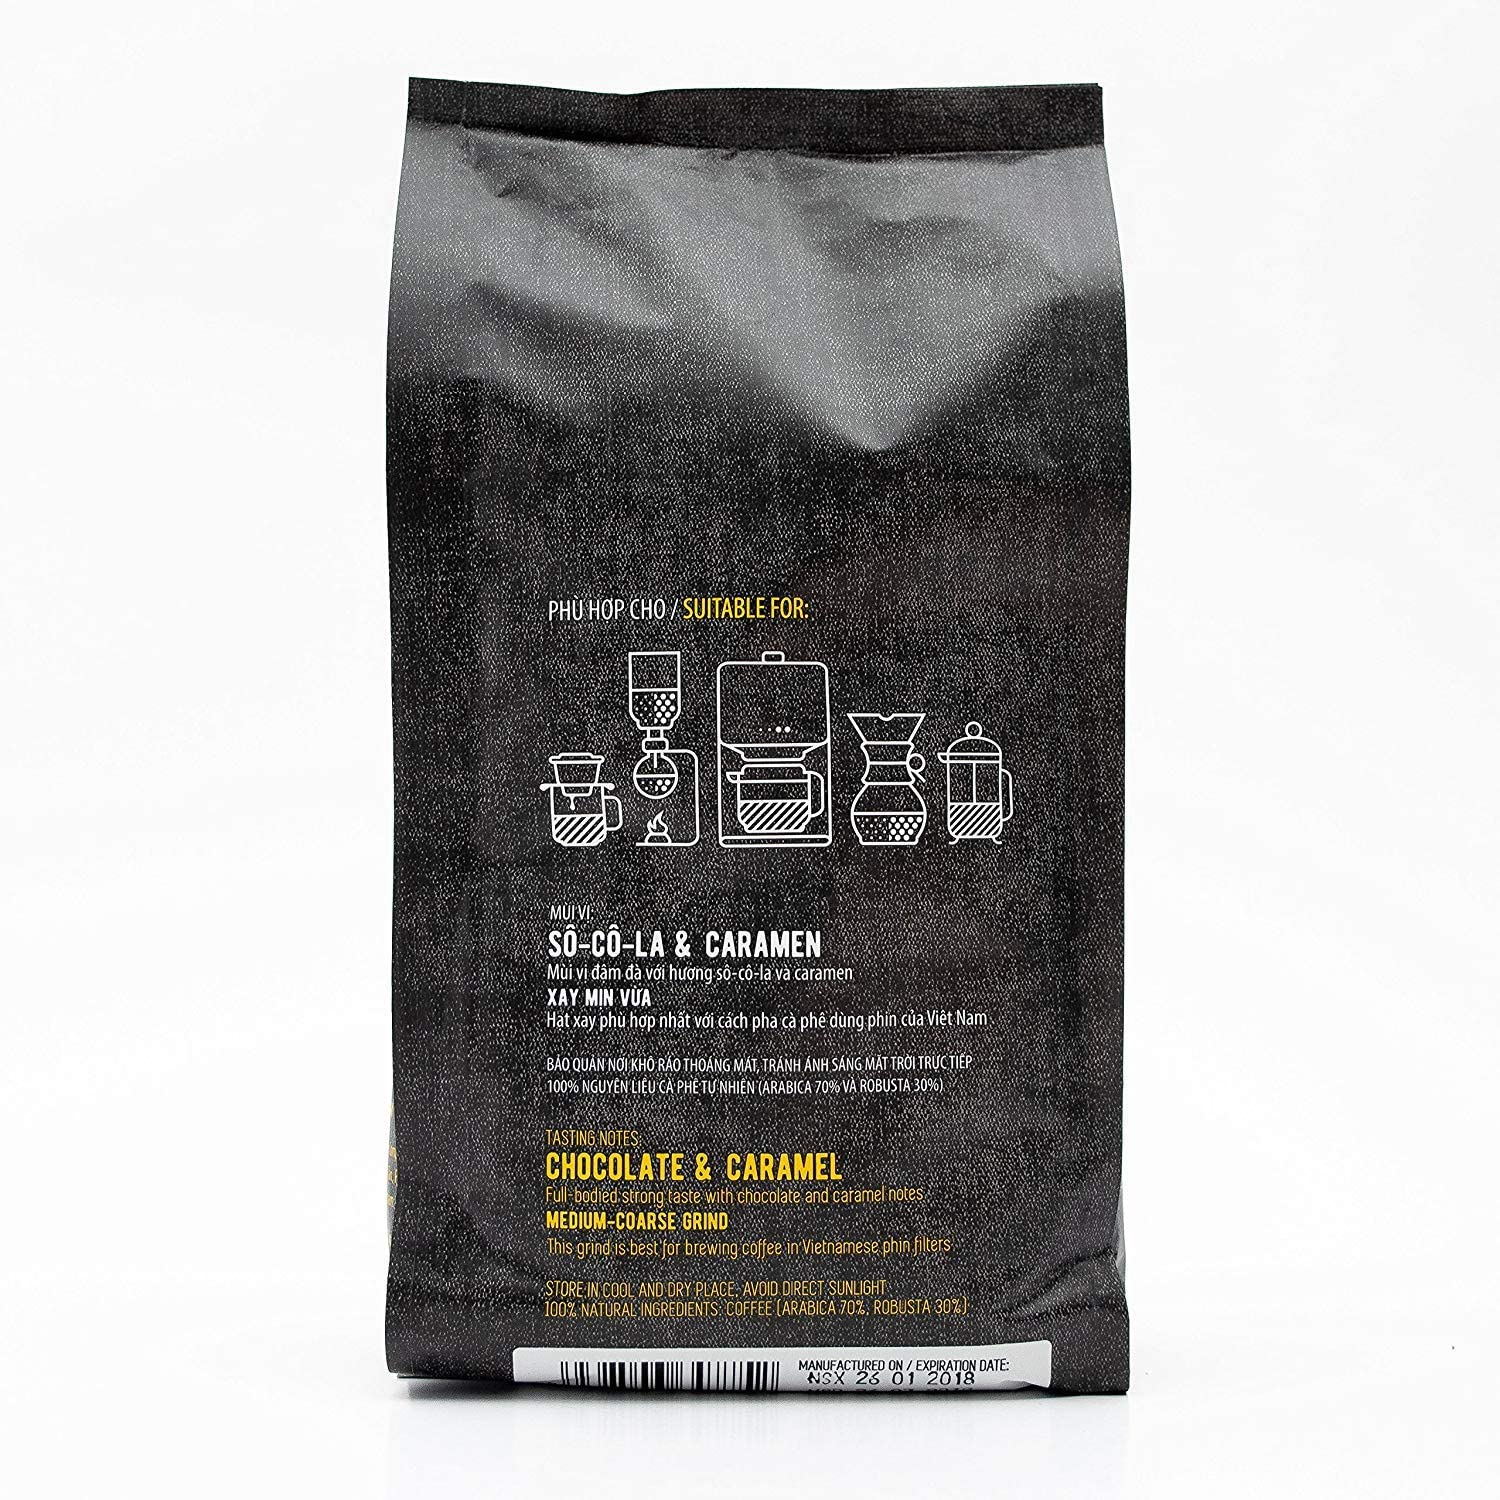 Suitable for All Coffee Machines 500g Mr Viet Ca Phe Dalat Ground Coffee Fresh and Promptly Delivered from Vietnam Ground Coffee Roasted Authentic Vietnamese Blend